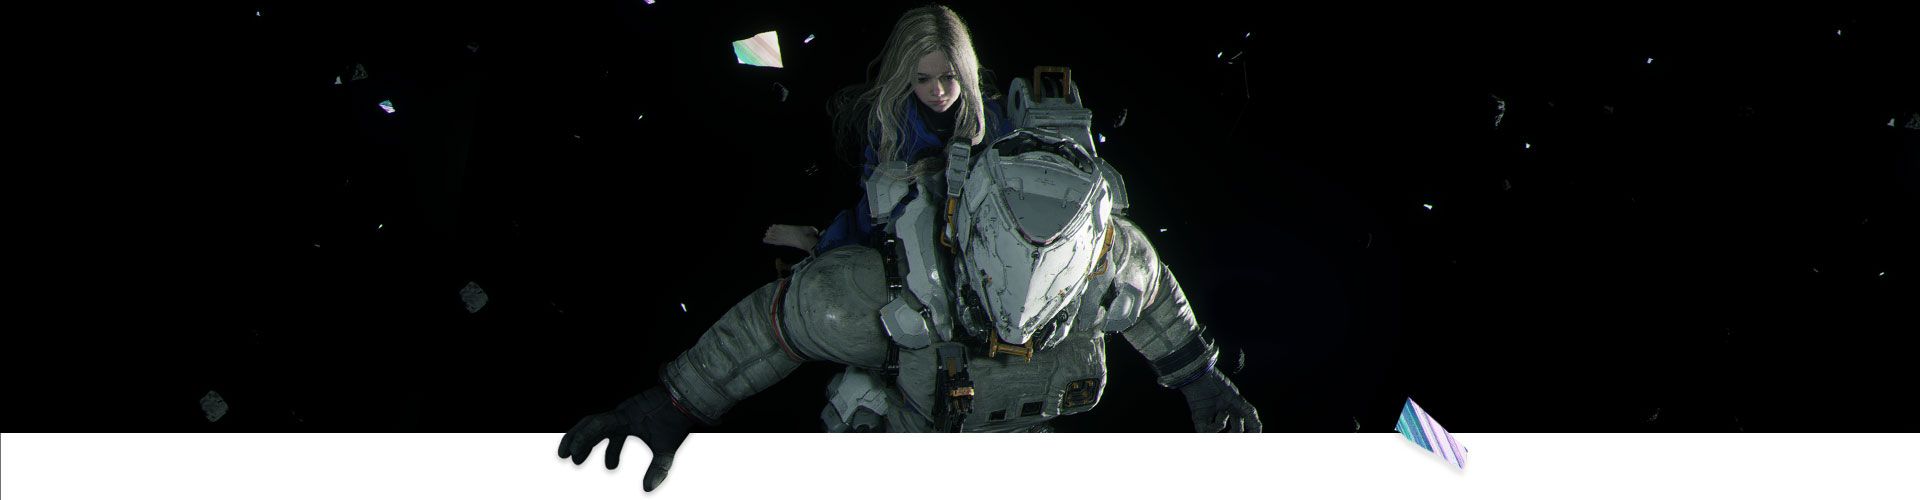 A girl rides on an astronaut through space